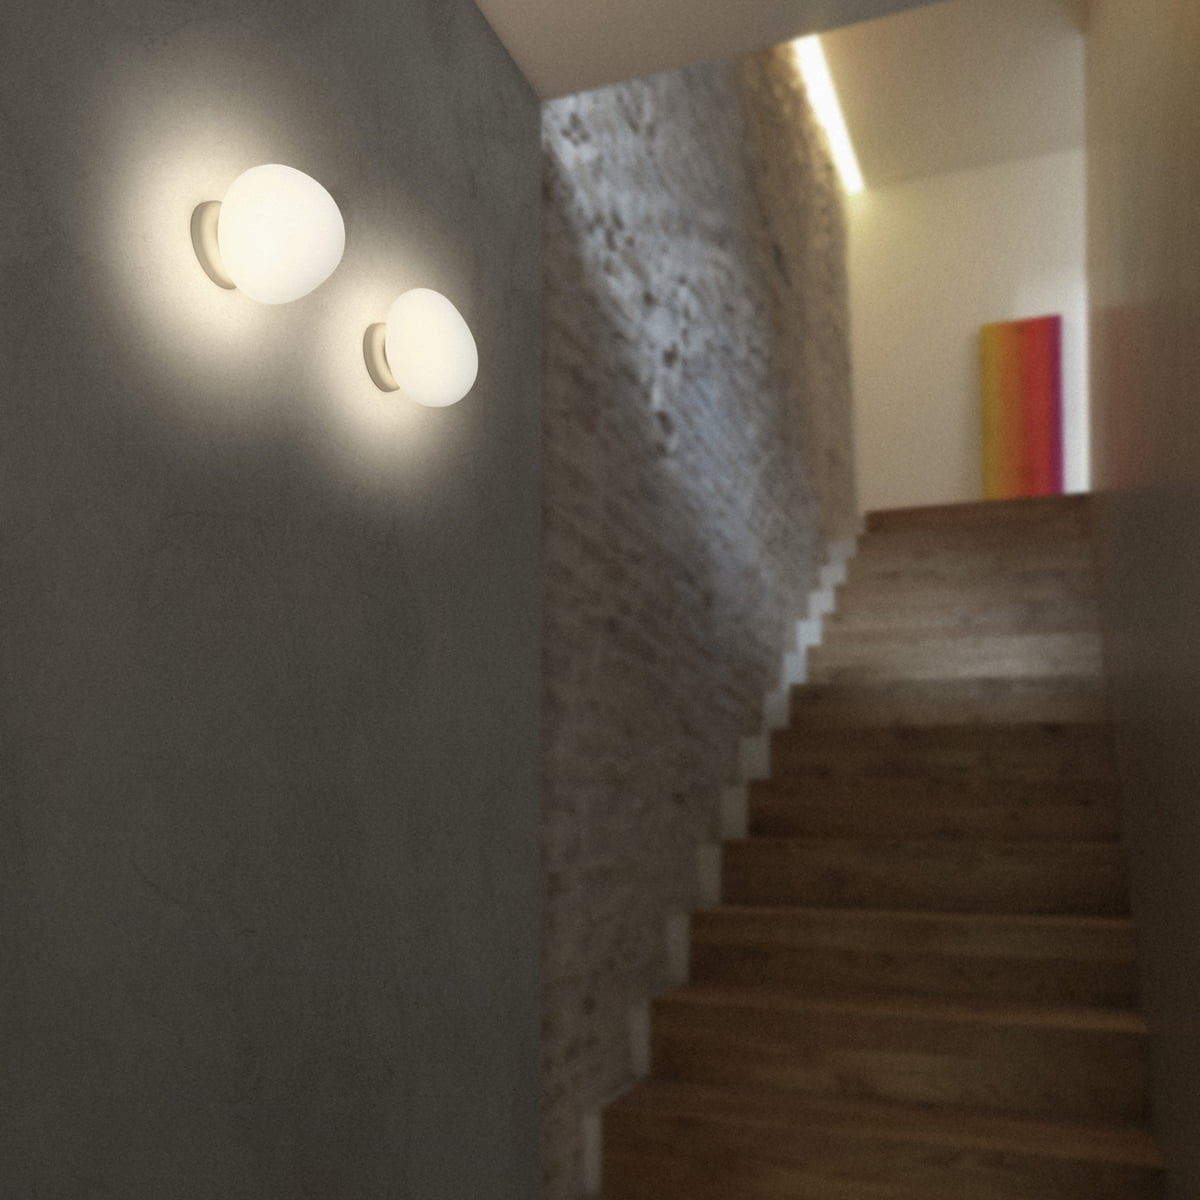 Gregg wall and ceiling lamp led by foscarini connox the foscarini gregg wall and ceiling lamp led aloadofball Gallery